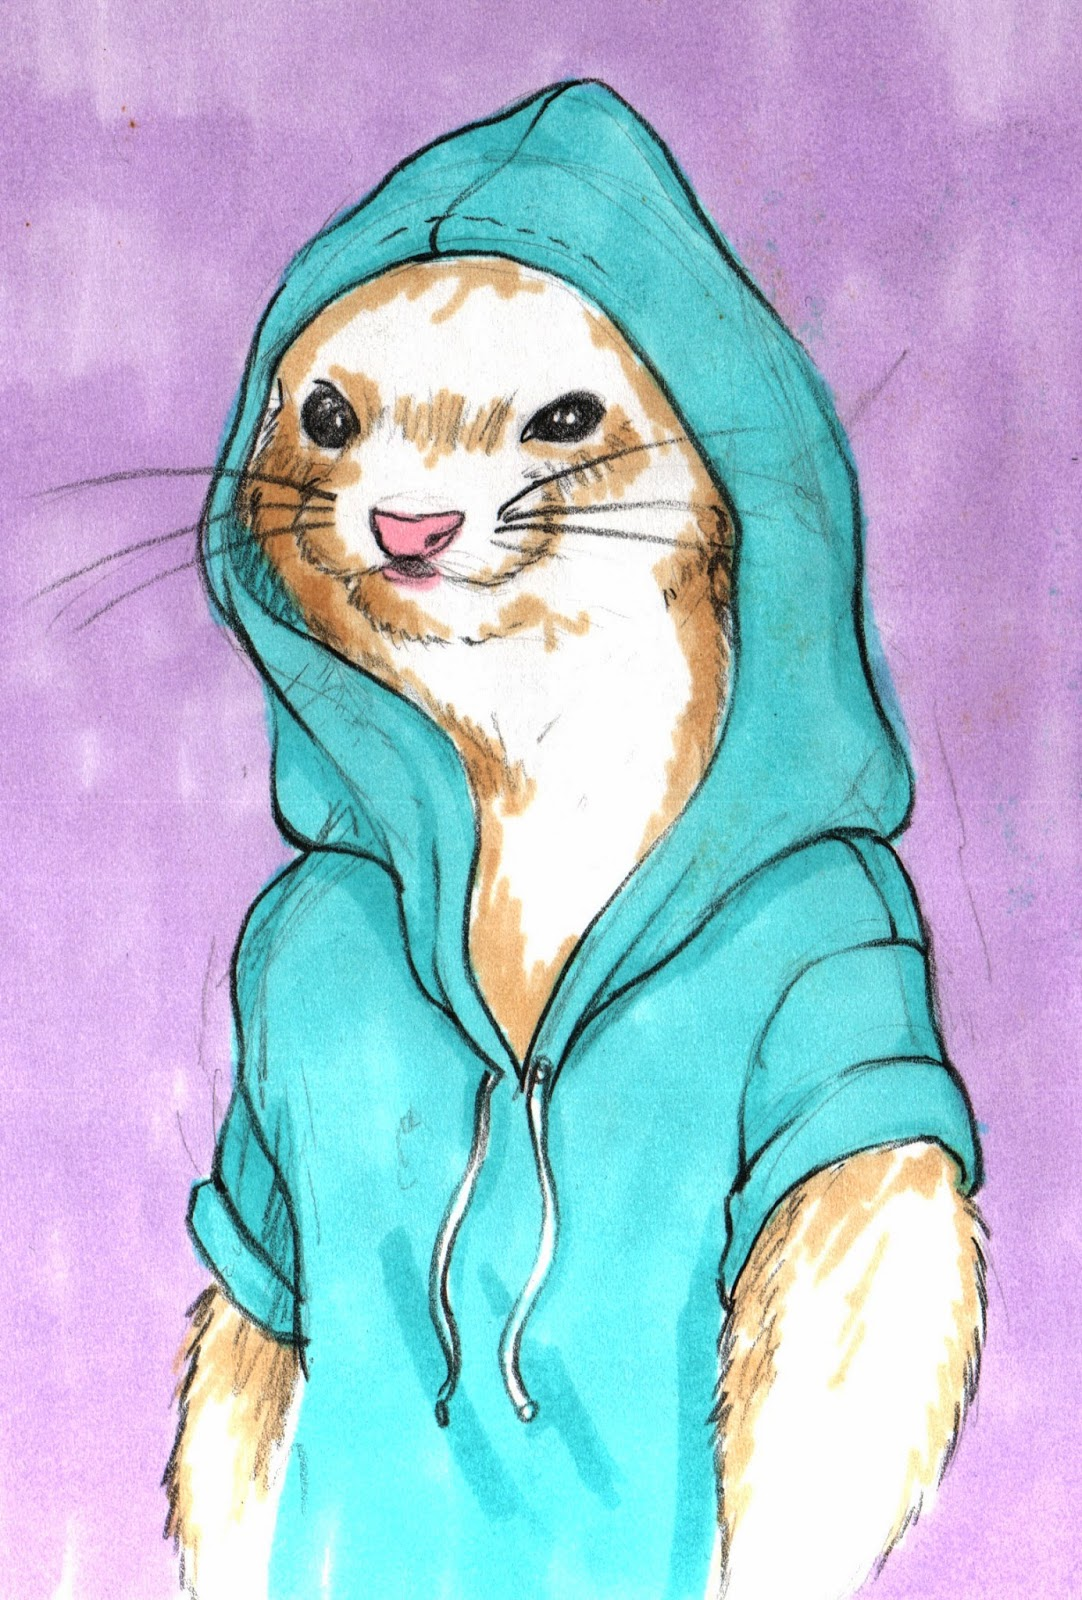 ferret-clothing, ferret-accessories, ferret-hoodie, ferret-depot